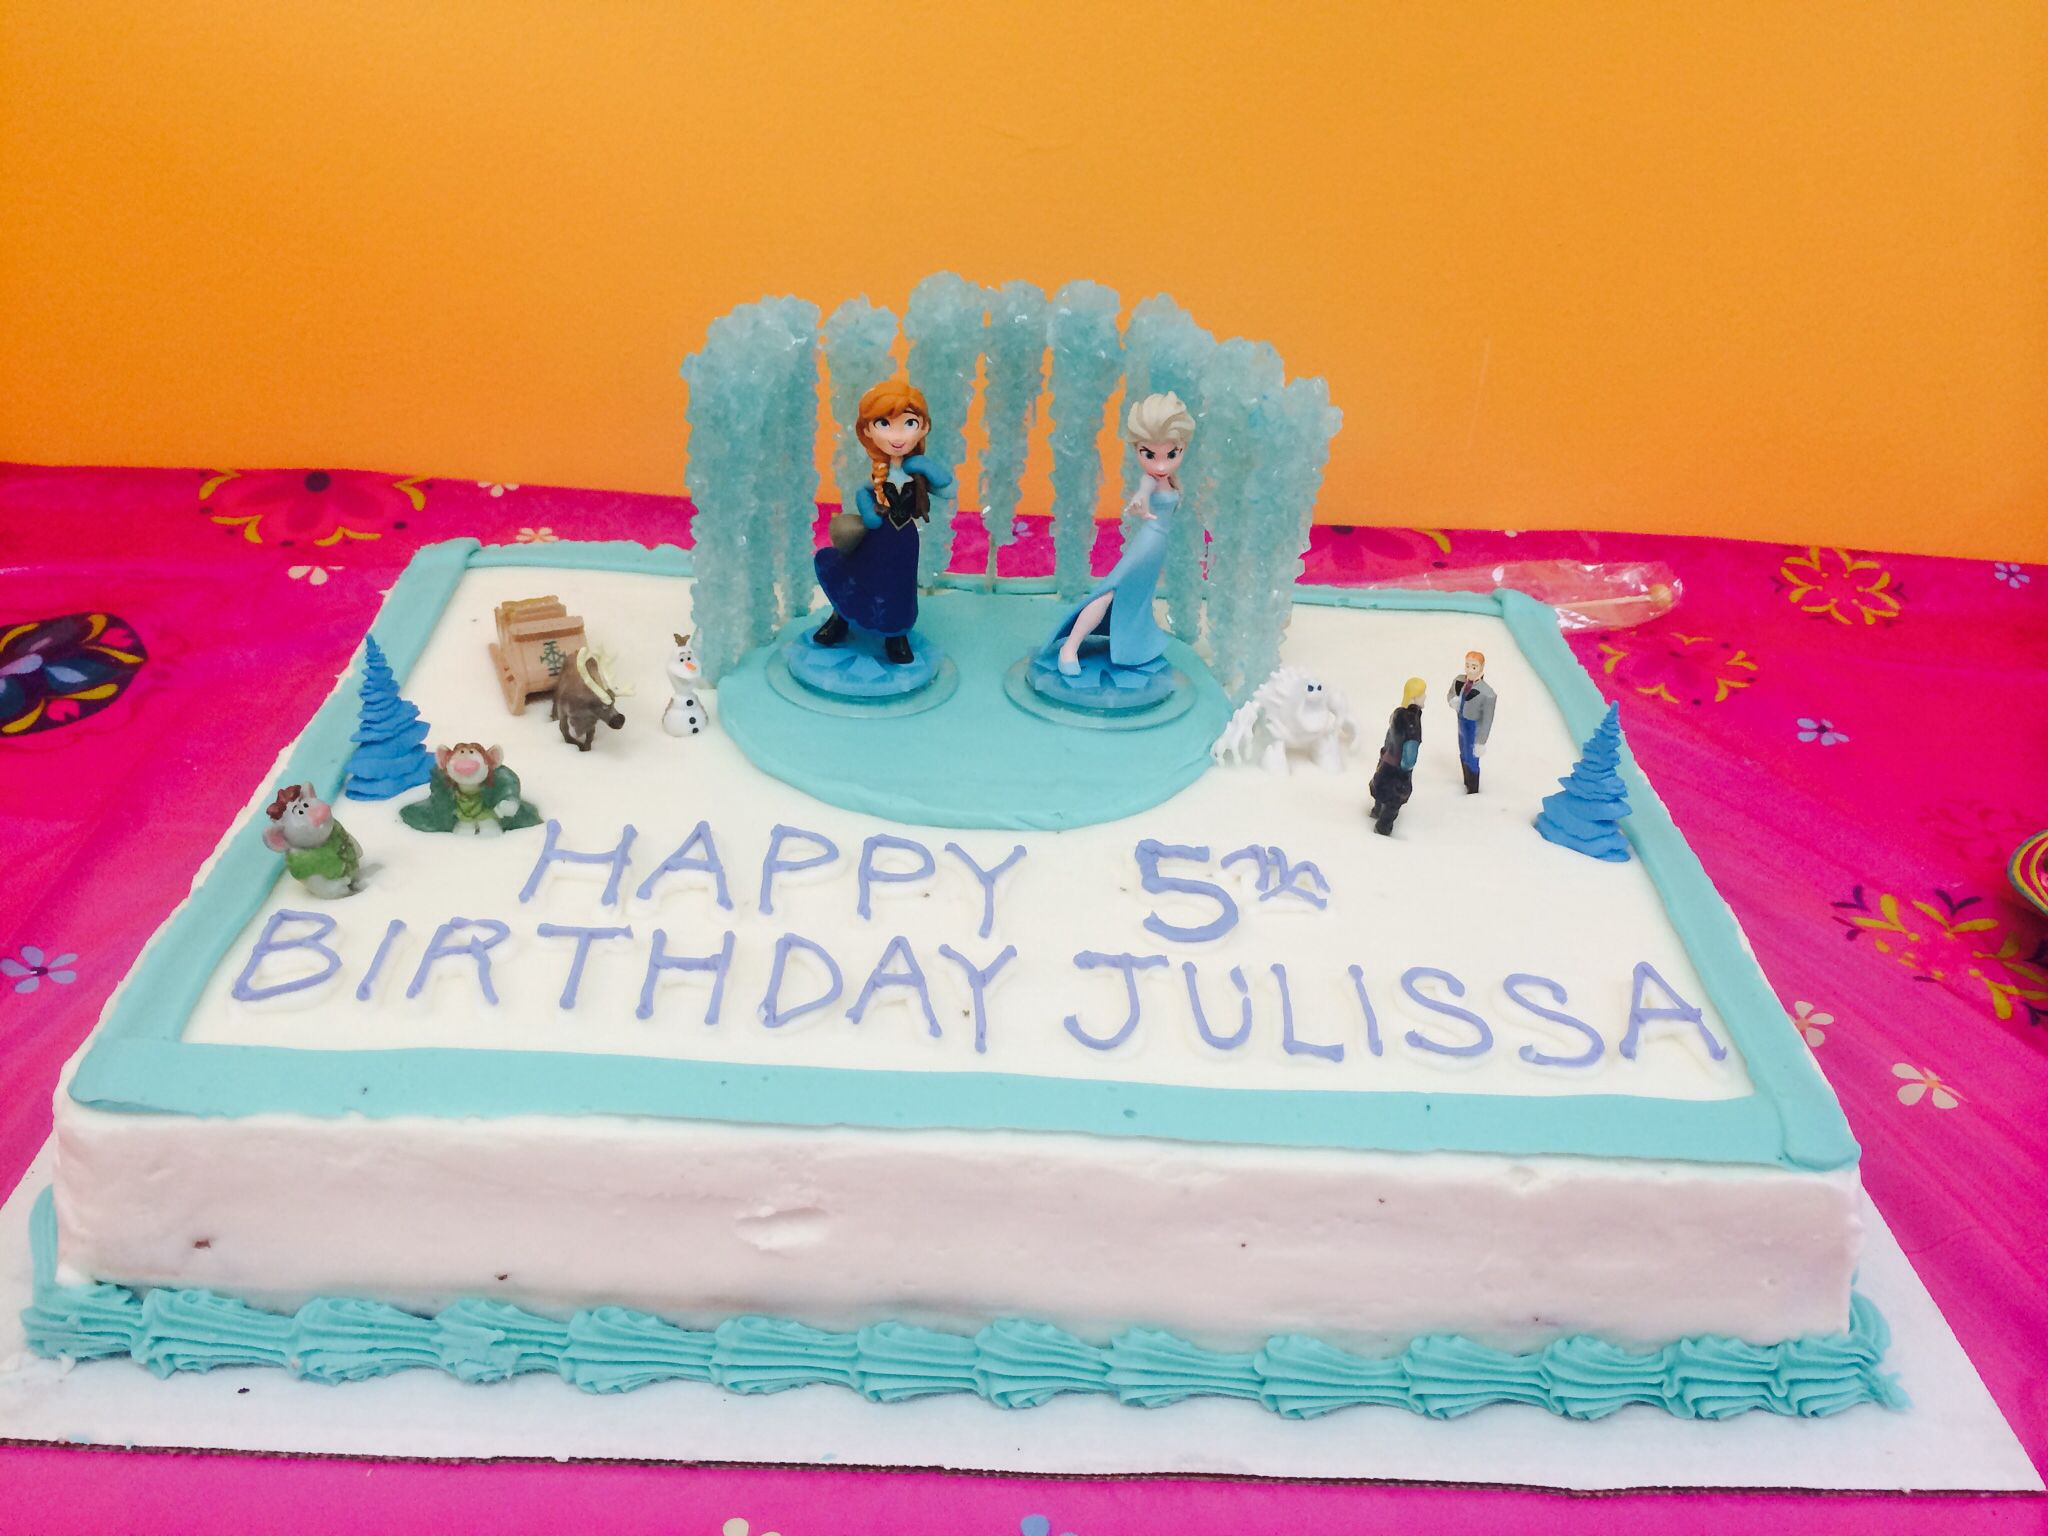 Frozen theme sheet cake (costco + figurines = ridiculously